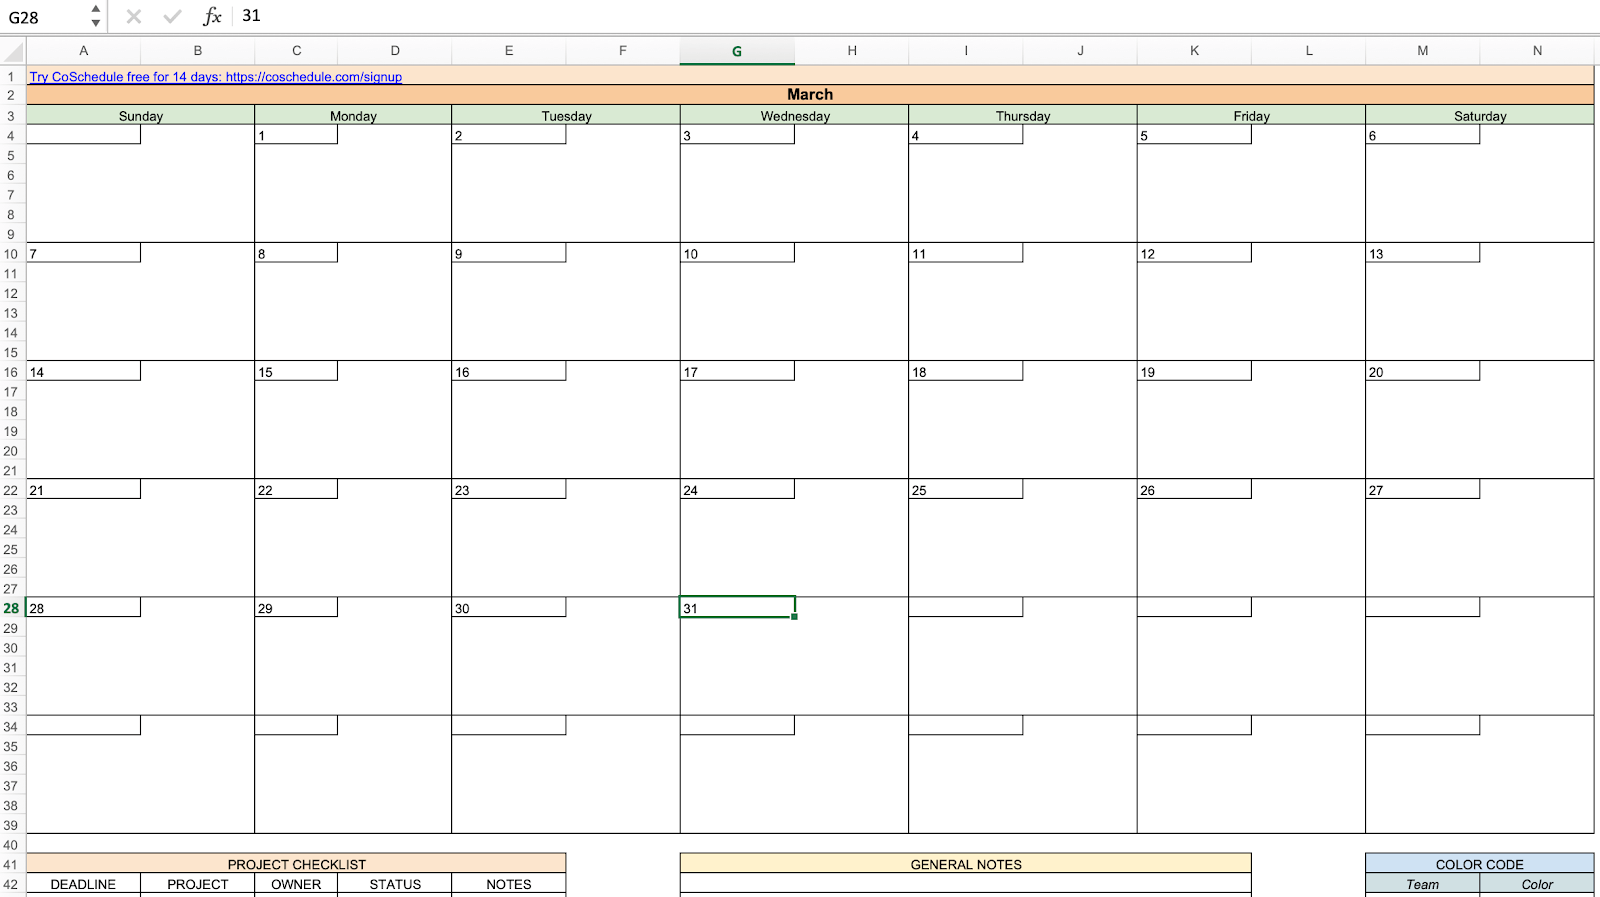 Editorial calendar to manage marcomm